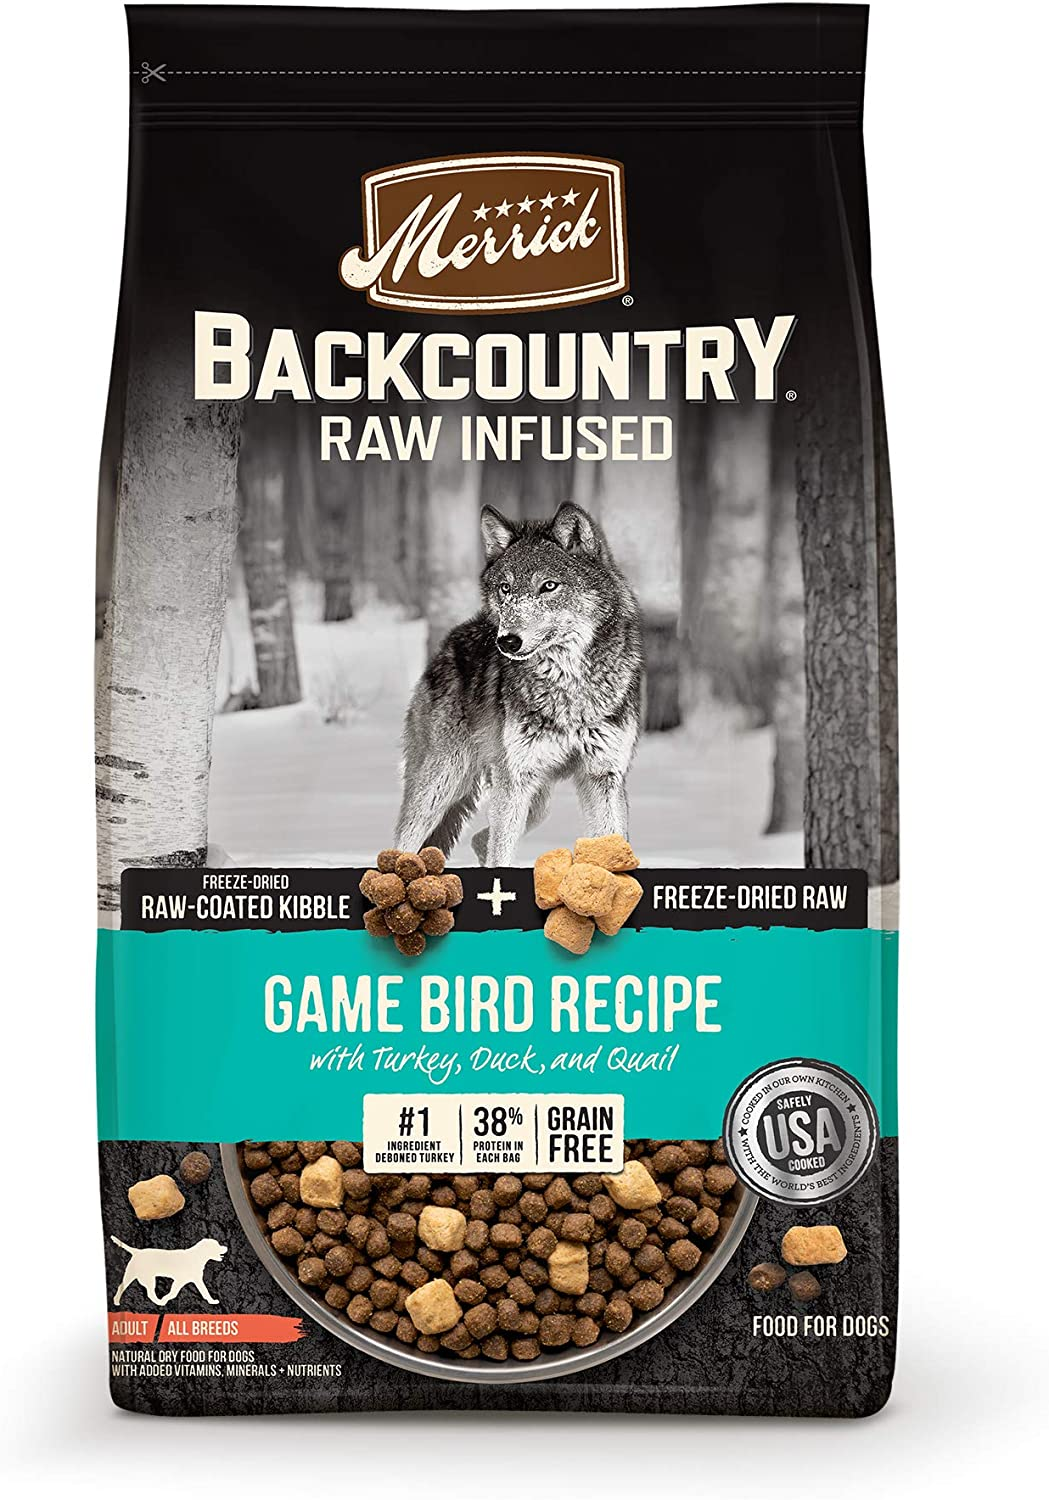 Merrick Backcountry Raw Infused Grain Free & with Healthy Grains Dry Dog Food